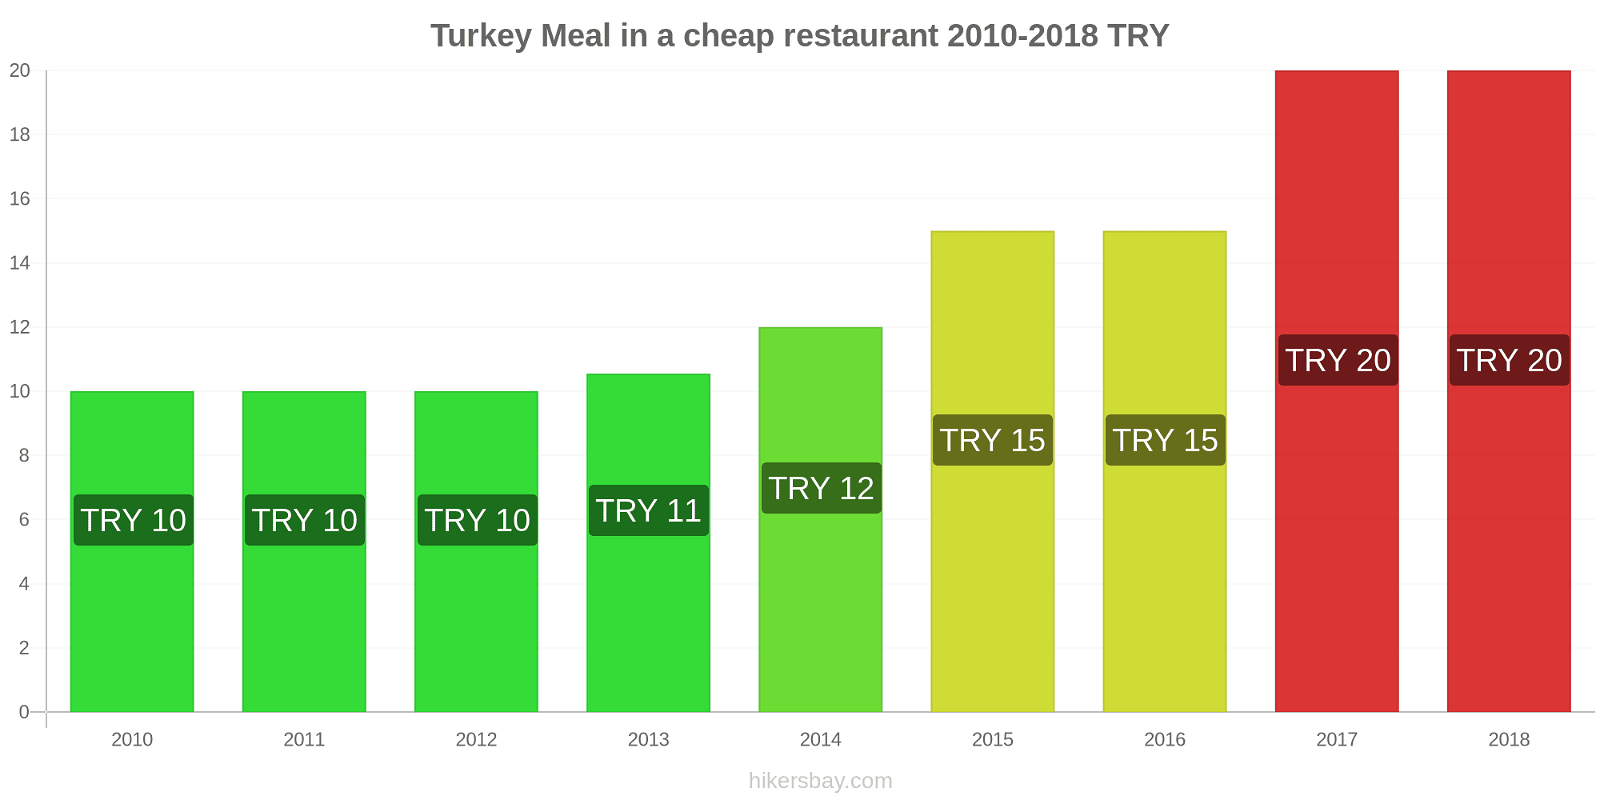 Turkey price changes Meal in a cheap restaurant hikersbay.com